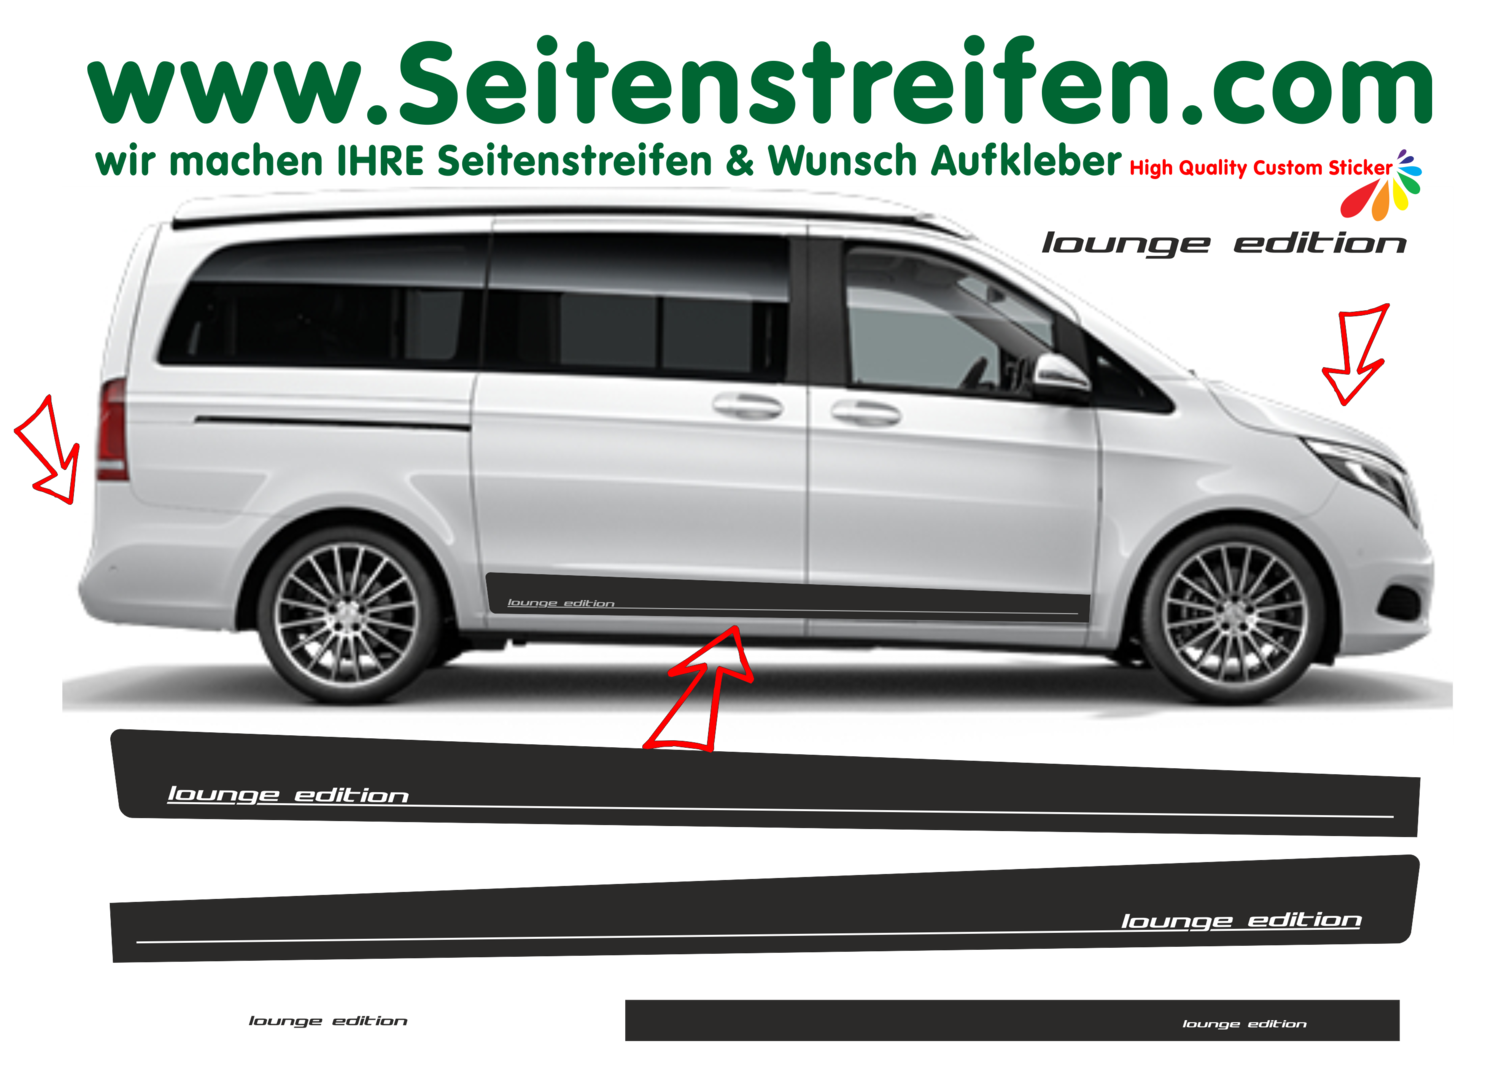 Mercedes Benz Class V Vito - model series 447/693/638 Lounge Edition - Decals Sticker Kit - N° 8867